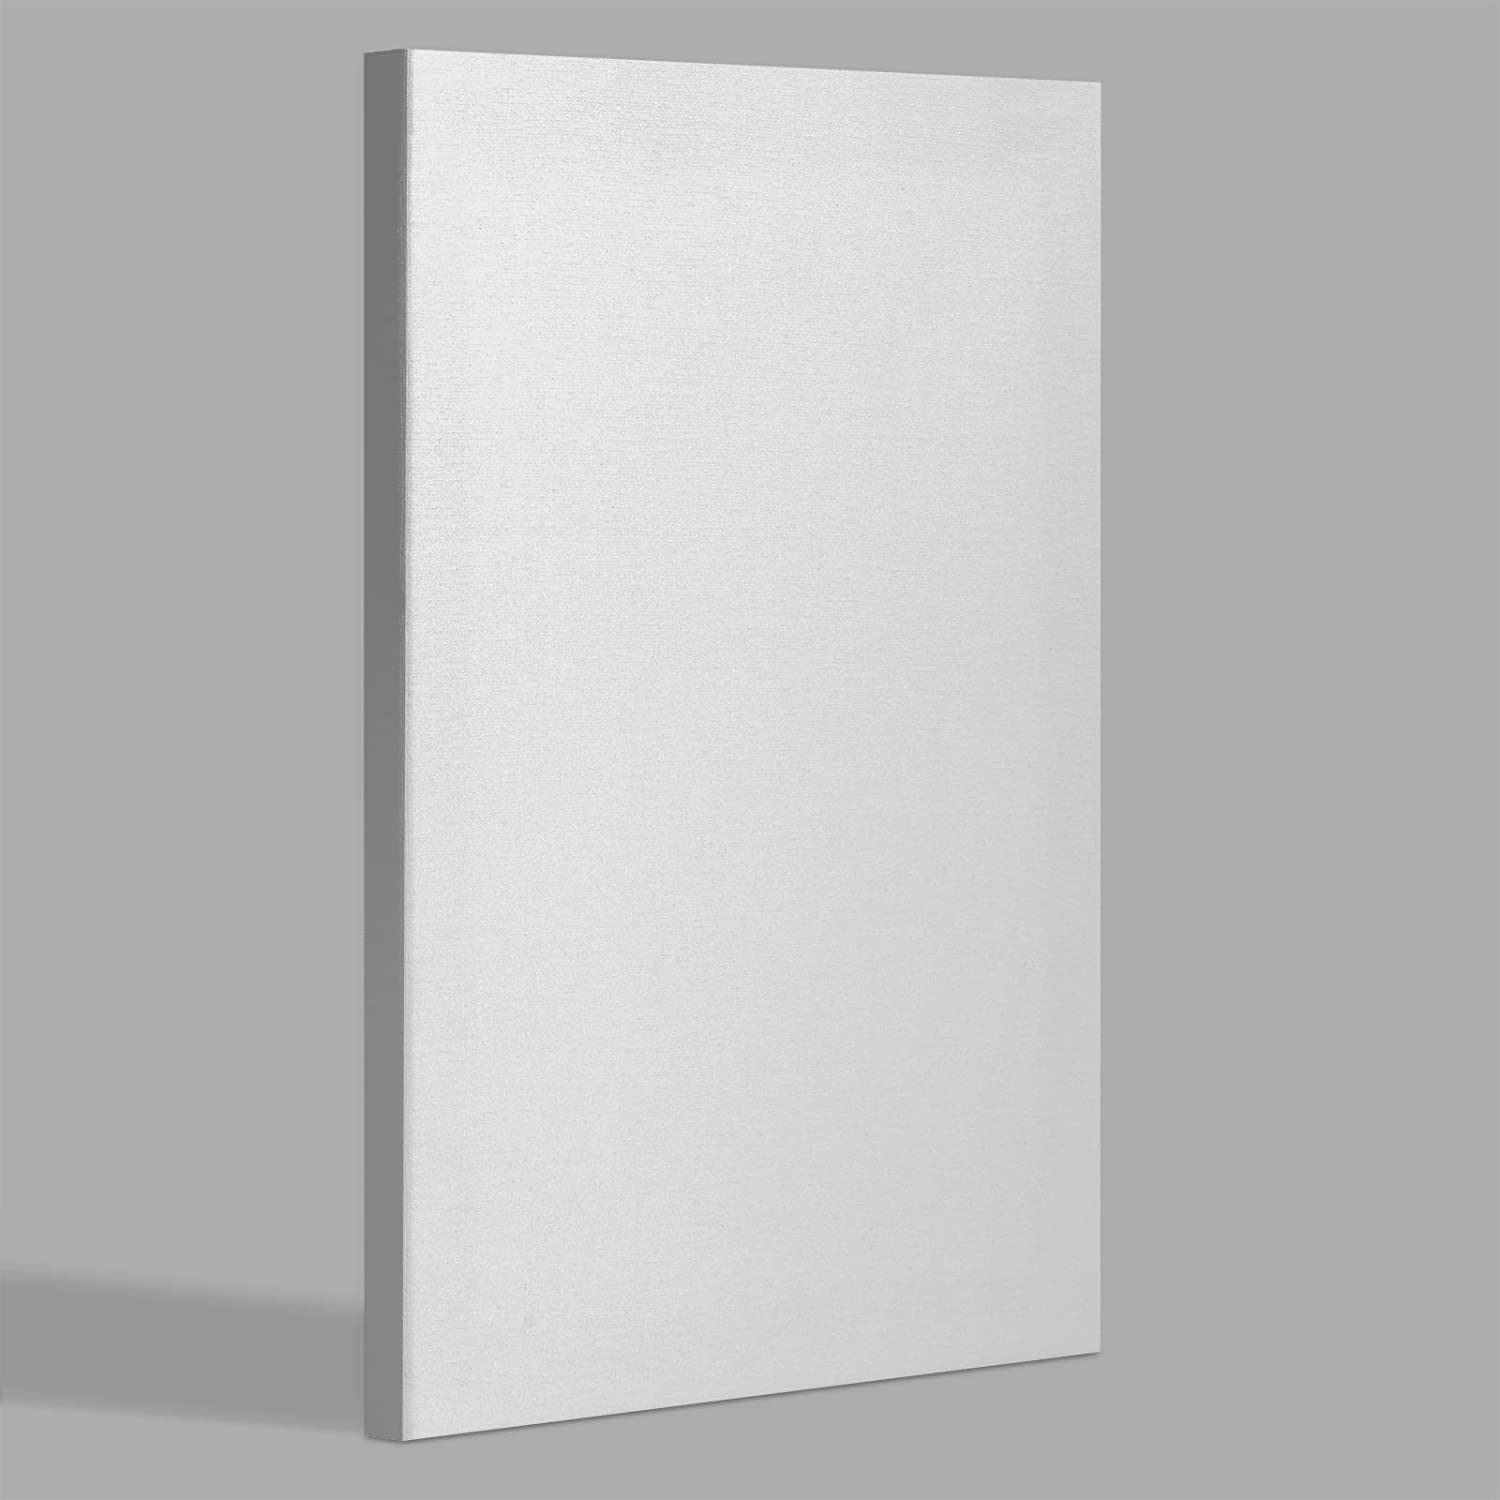 miniature 20 - Americanflat Stretched Canvas in White 100% Cotton Wooden Frames & Acid Free